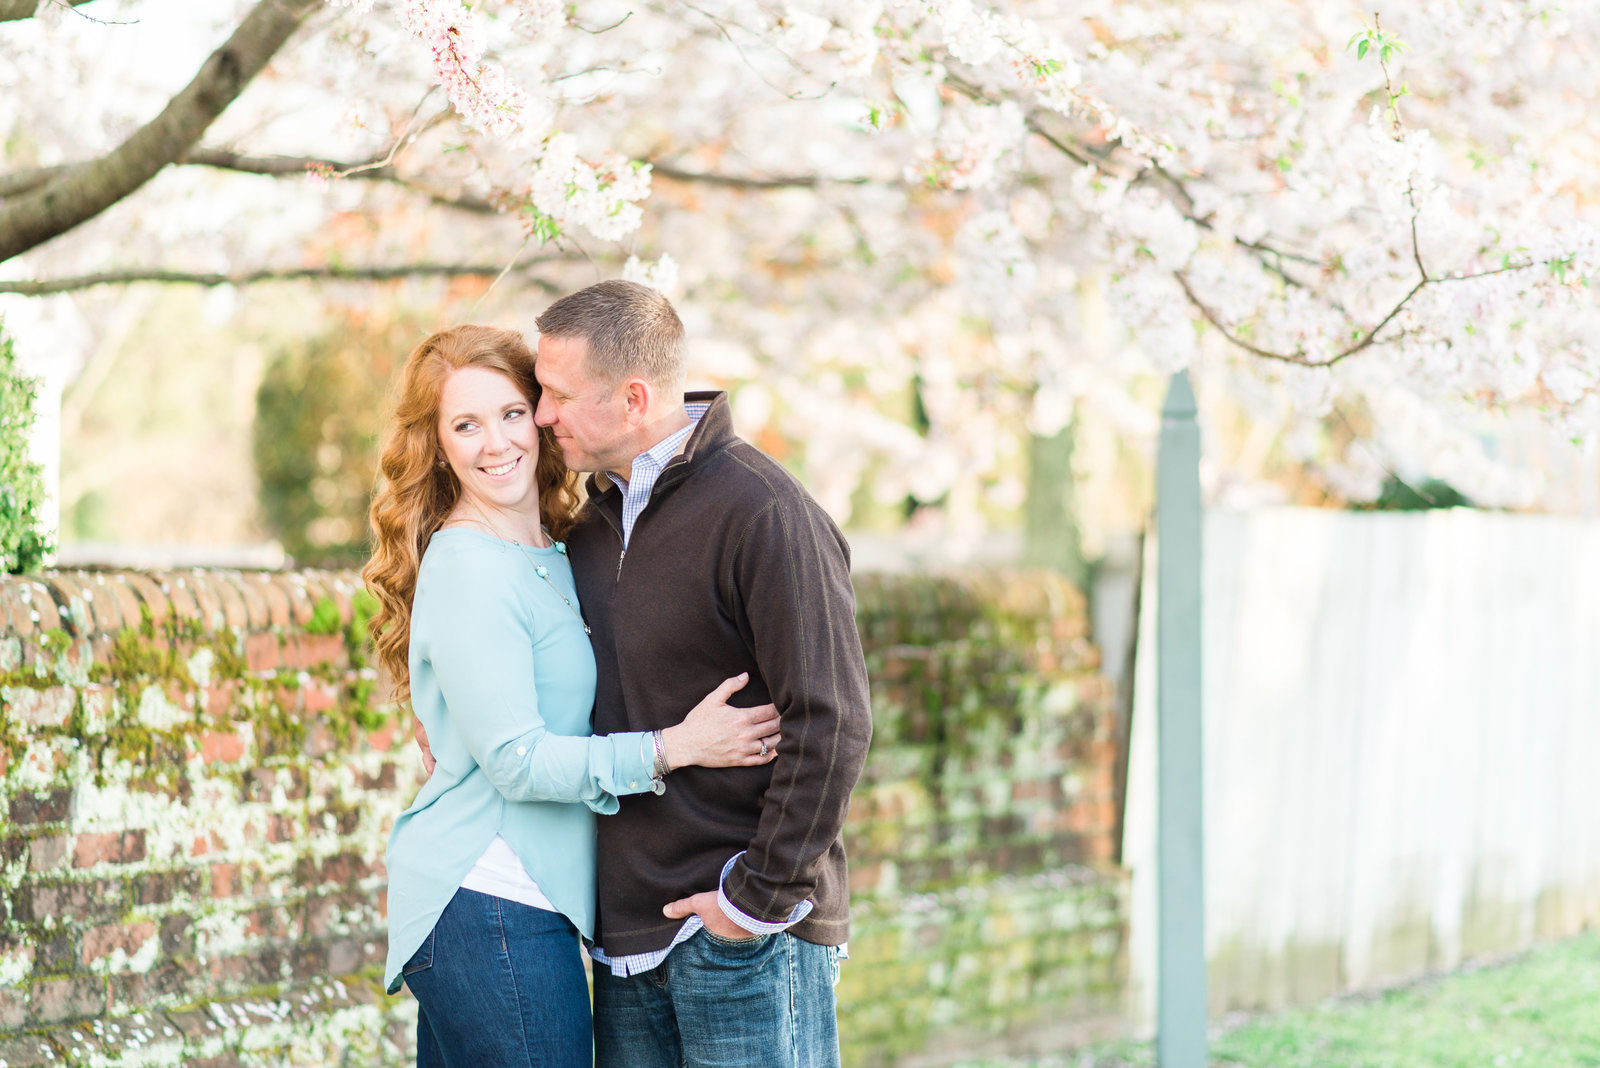 yorktown-beach-cherry-blossom-virginia-engagement-photo158